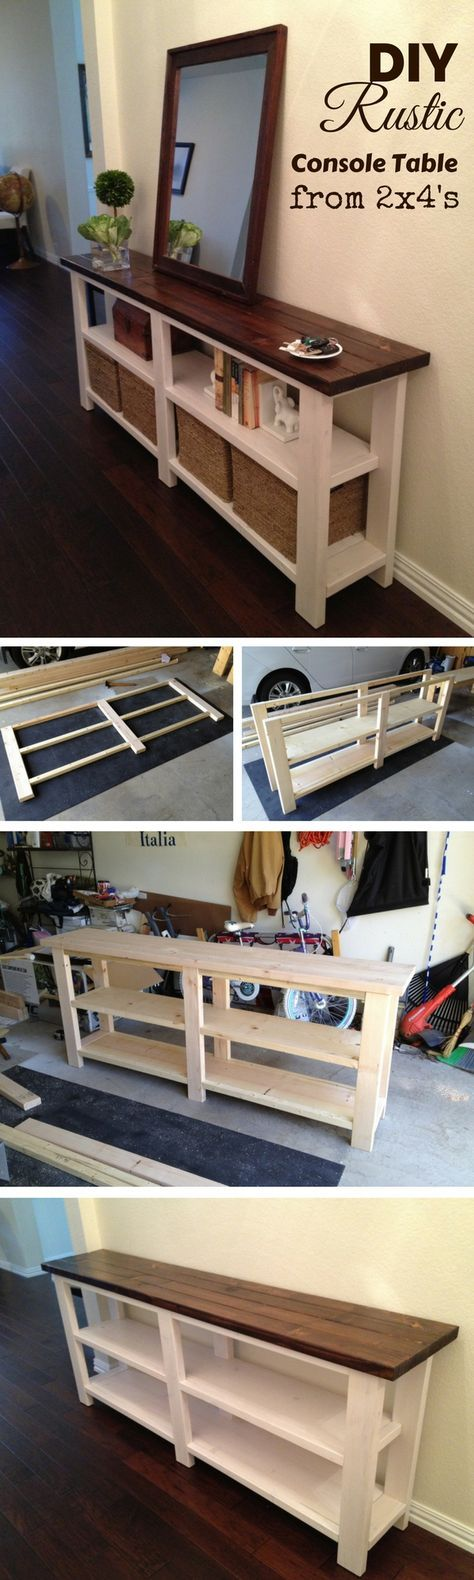 20 Easy DIY 2×4 Wood Projects You Can Make Even from Scrap